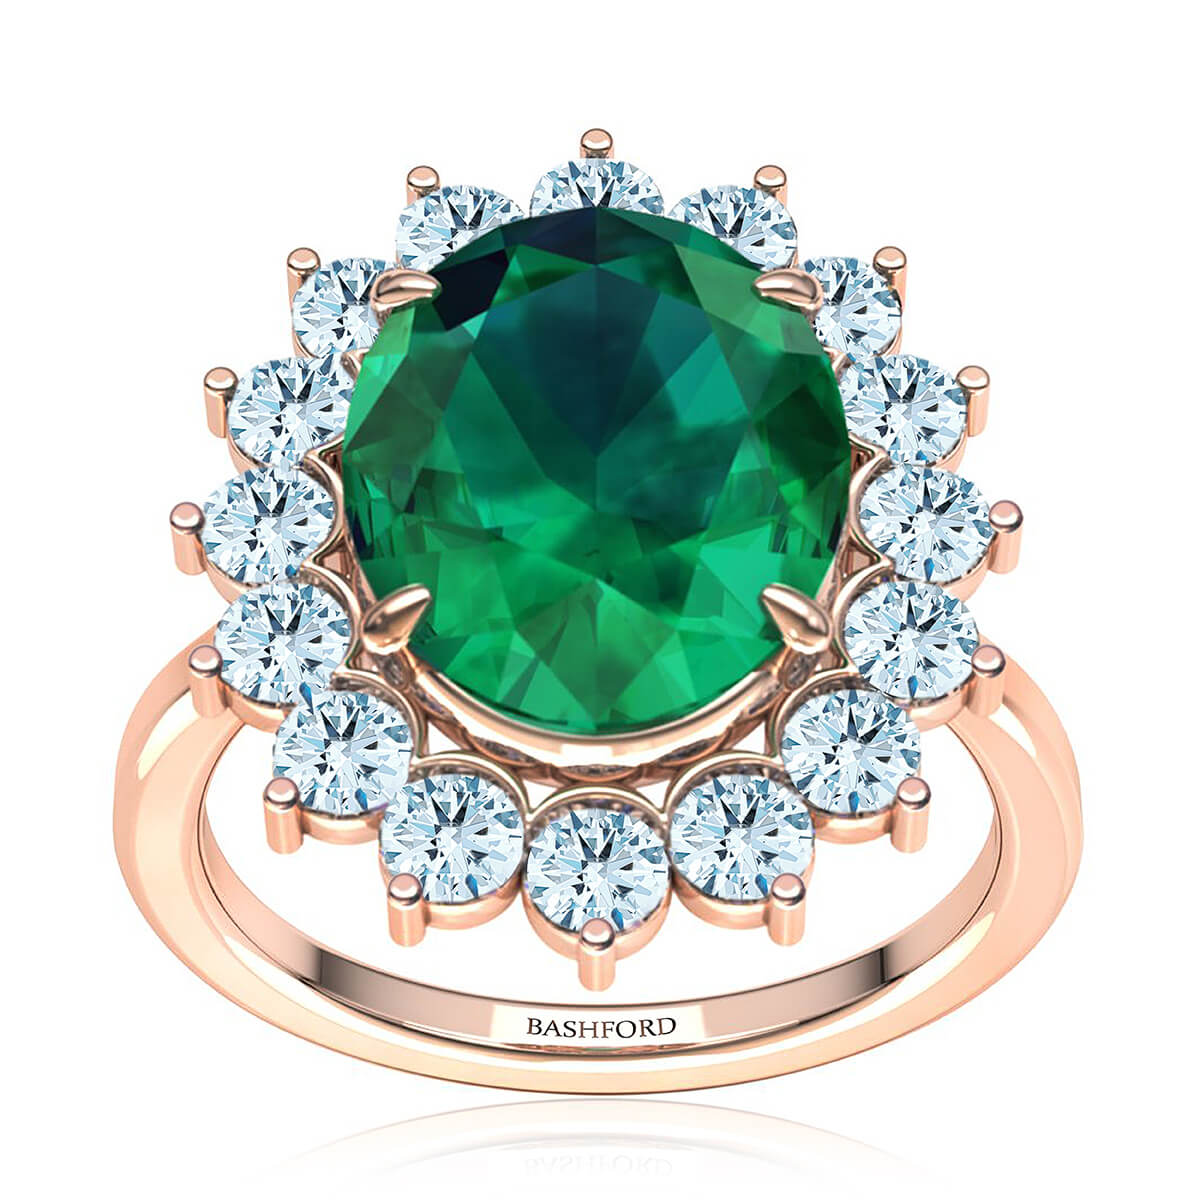 Maribel Emerald Ring (with 1 Carat Oval Emerald)